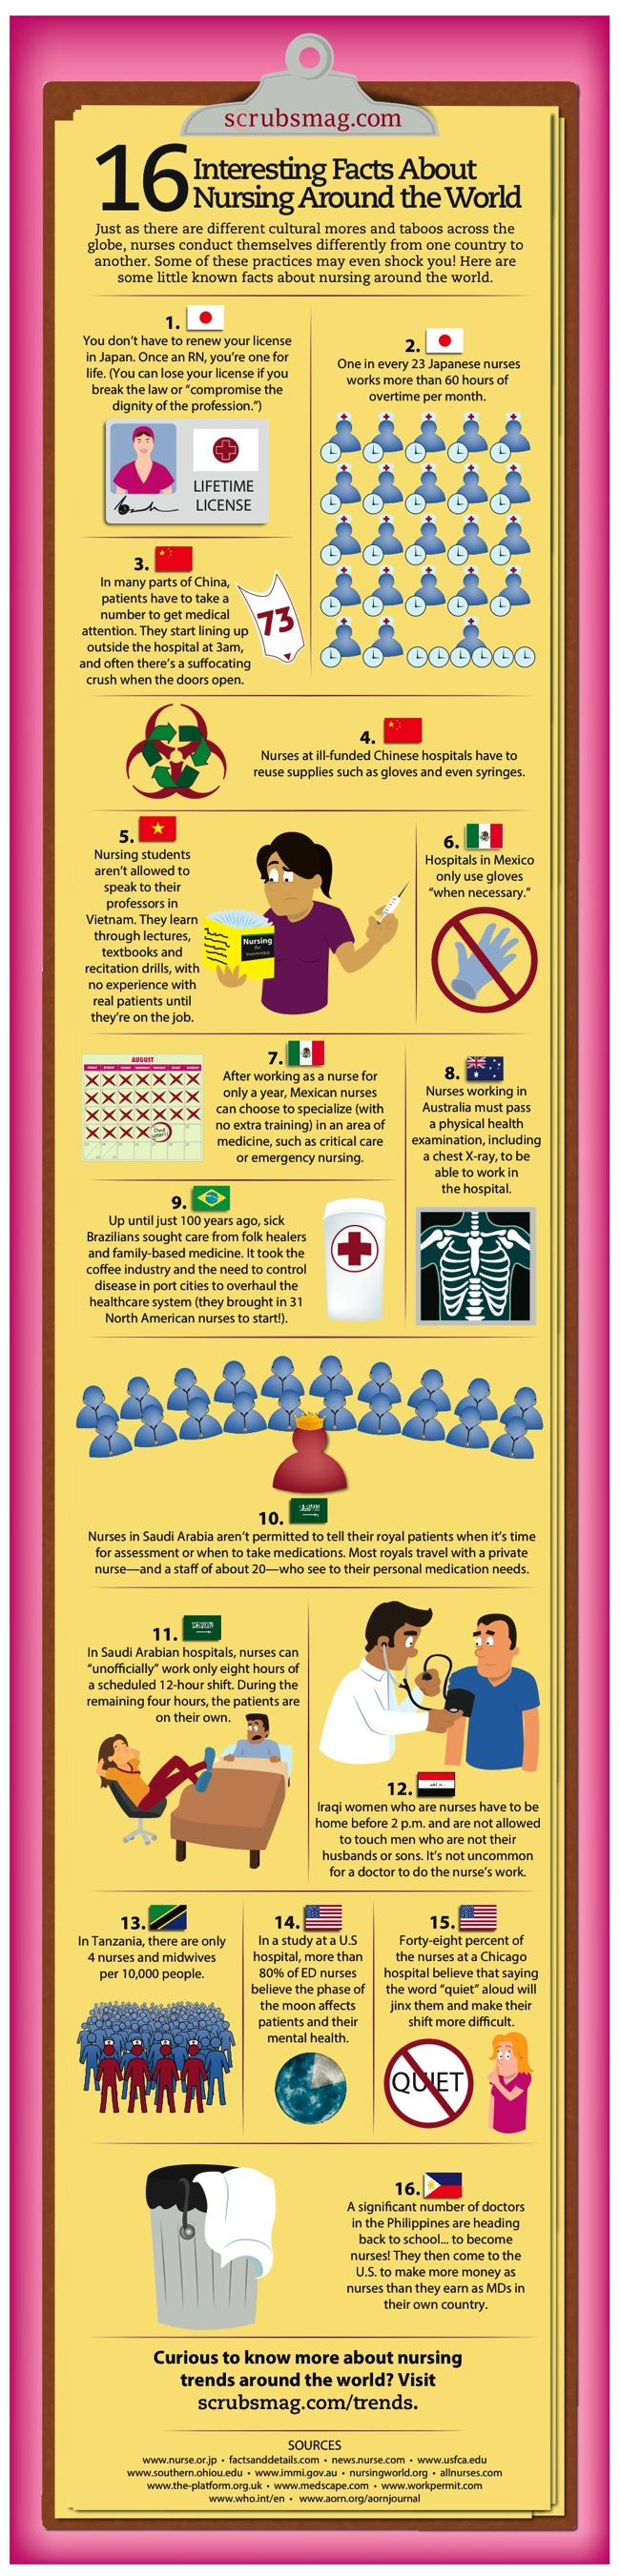 2013-10-8 Interesting Facts About Nurses Around the World.jpg